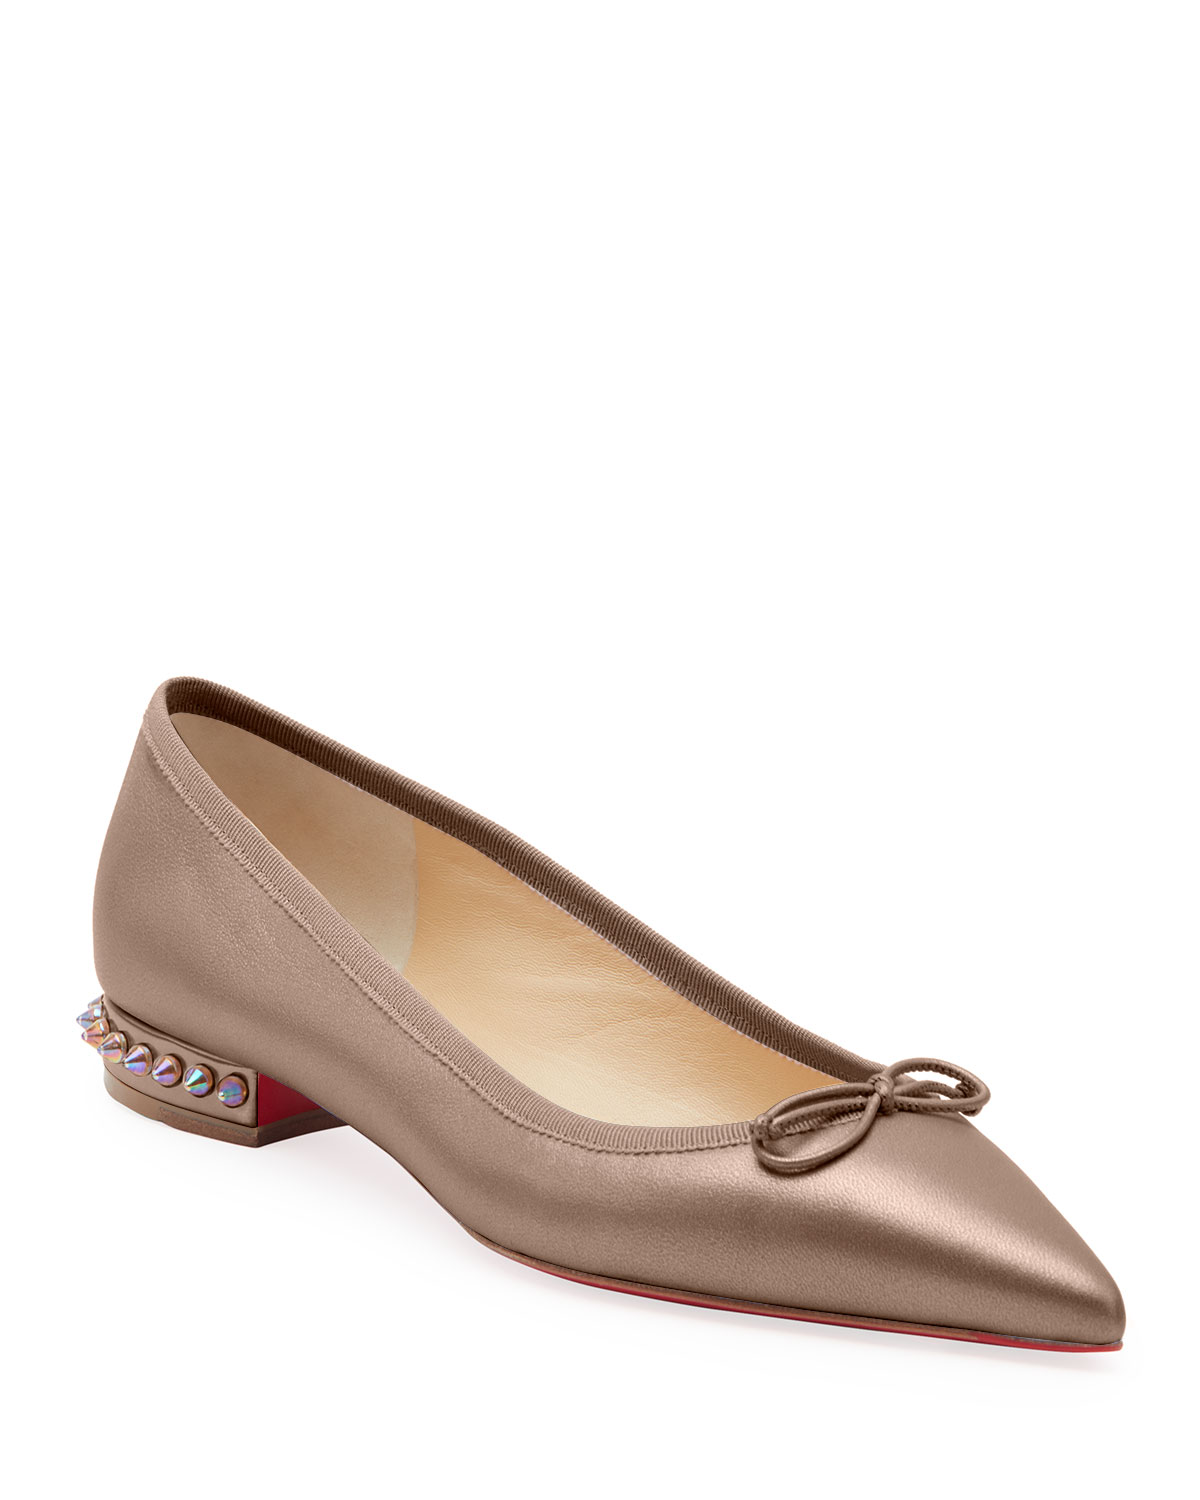 online store a33d6 4f917 Hall Spike-Heel Leather Red Sole Flats